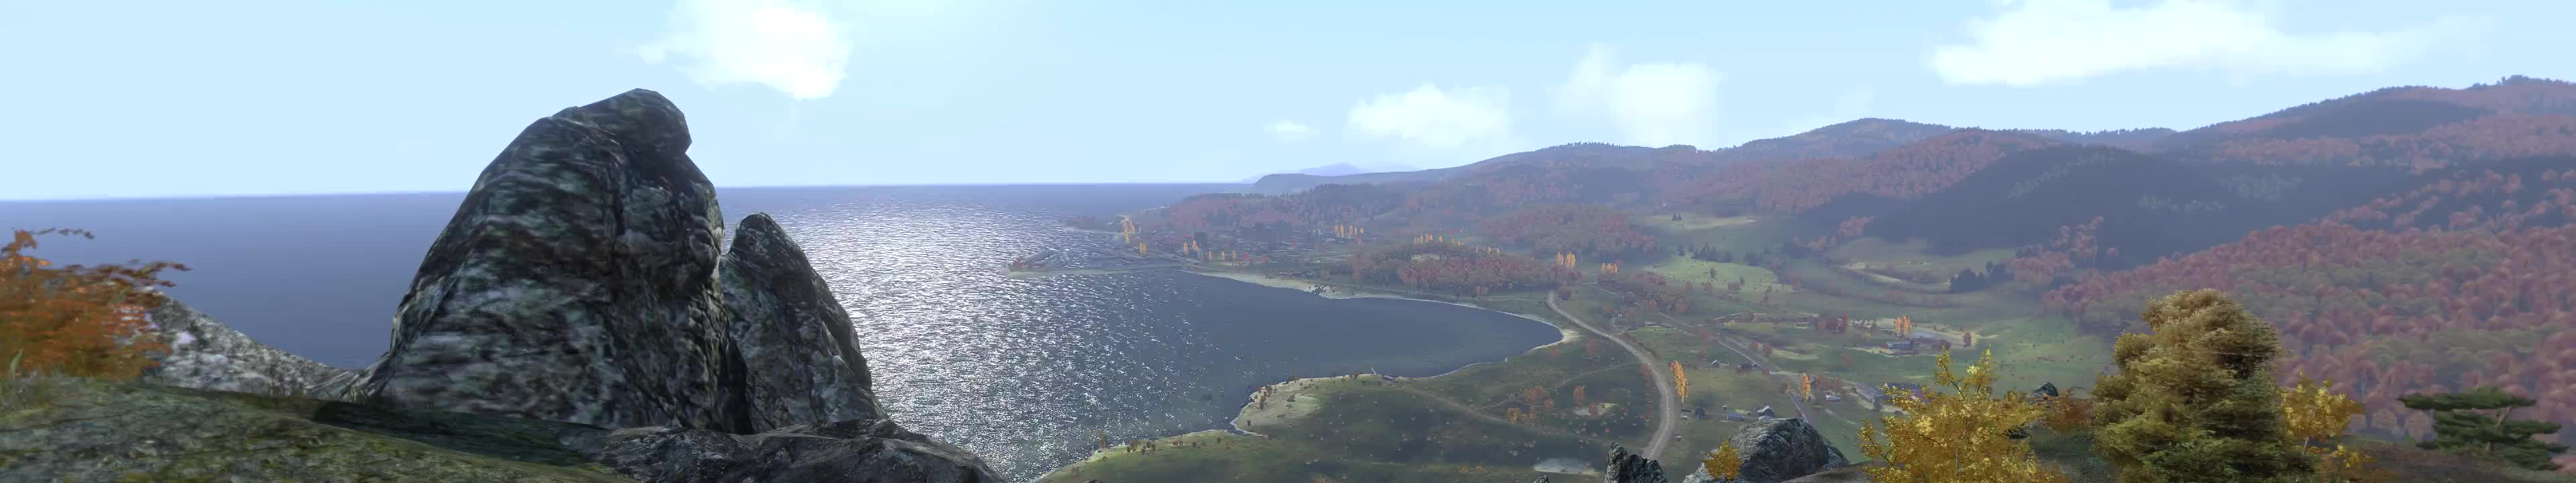 arma, Chernarus Timelapse Captured in 5760x1080 (reddit) GIFs